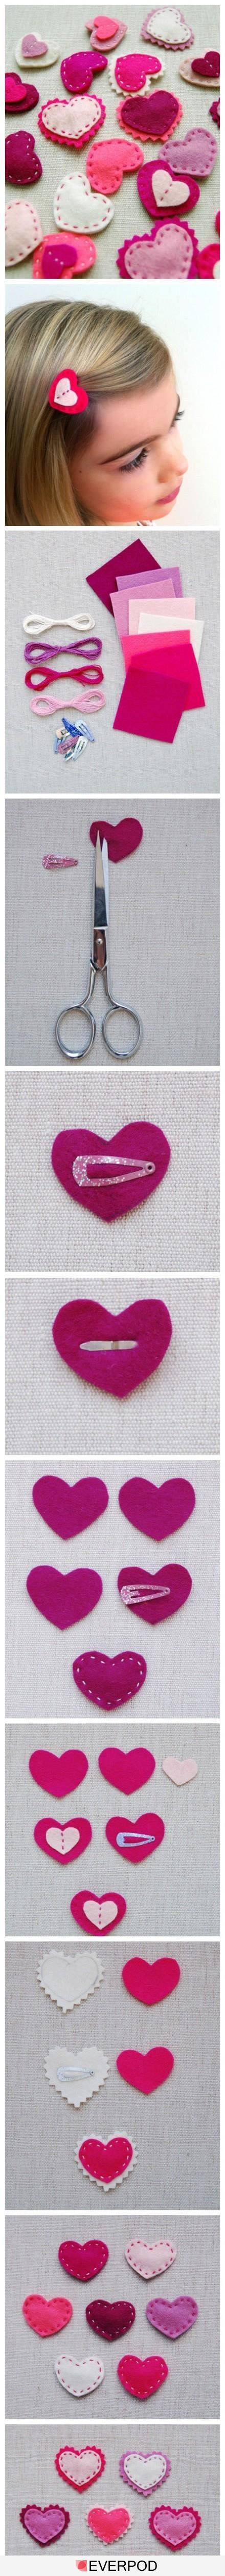 DIY Little Girl's Heart Hair Clip